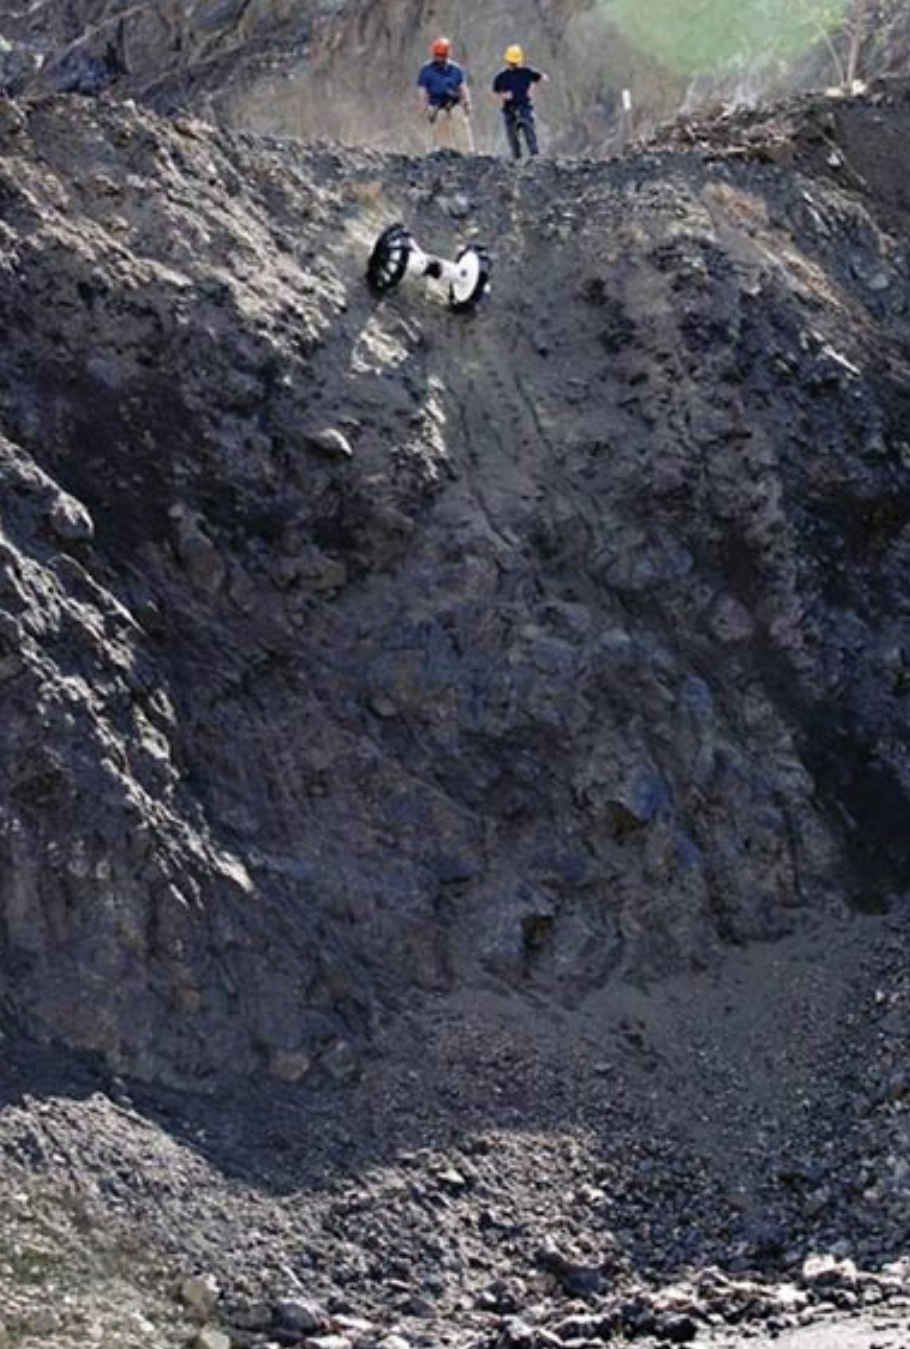 Testing the Axel rover down a 20 m cliff face with slopes ranging from 65 degrees to near-vertical. The tether can support the rover over sheer descents. Credit: Nesnas et al., 2012, Figure 18.